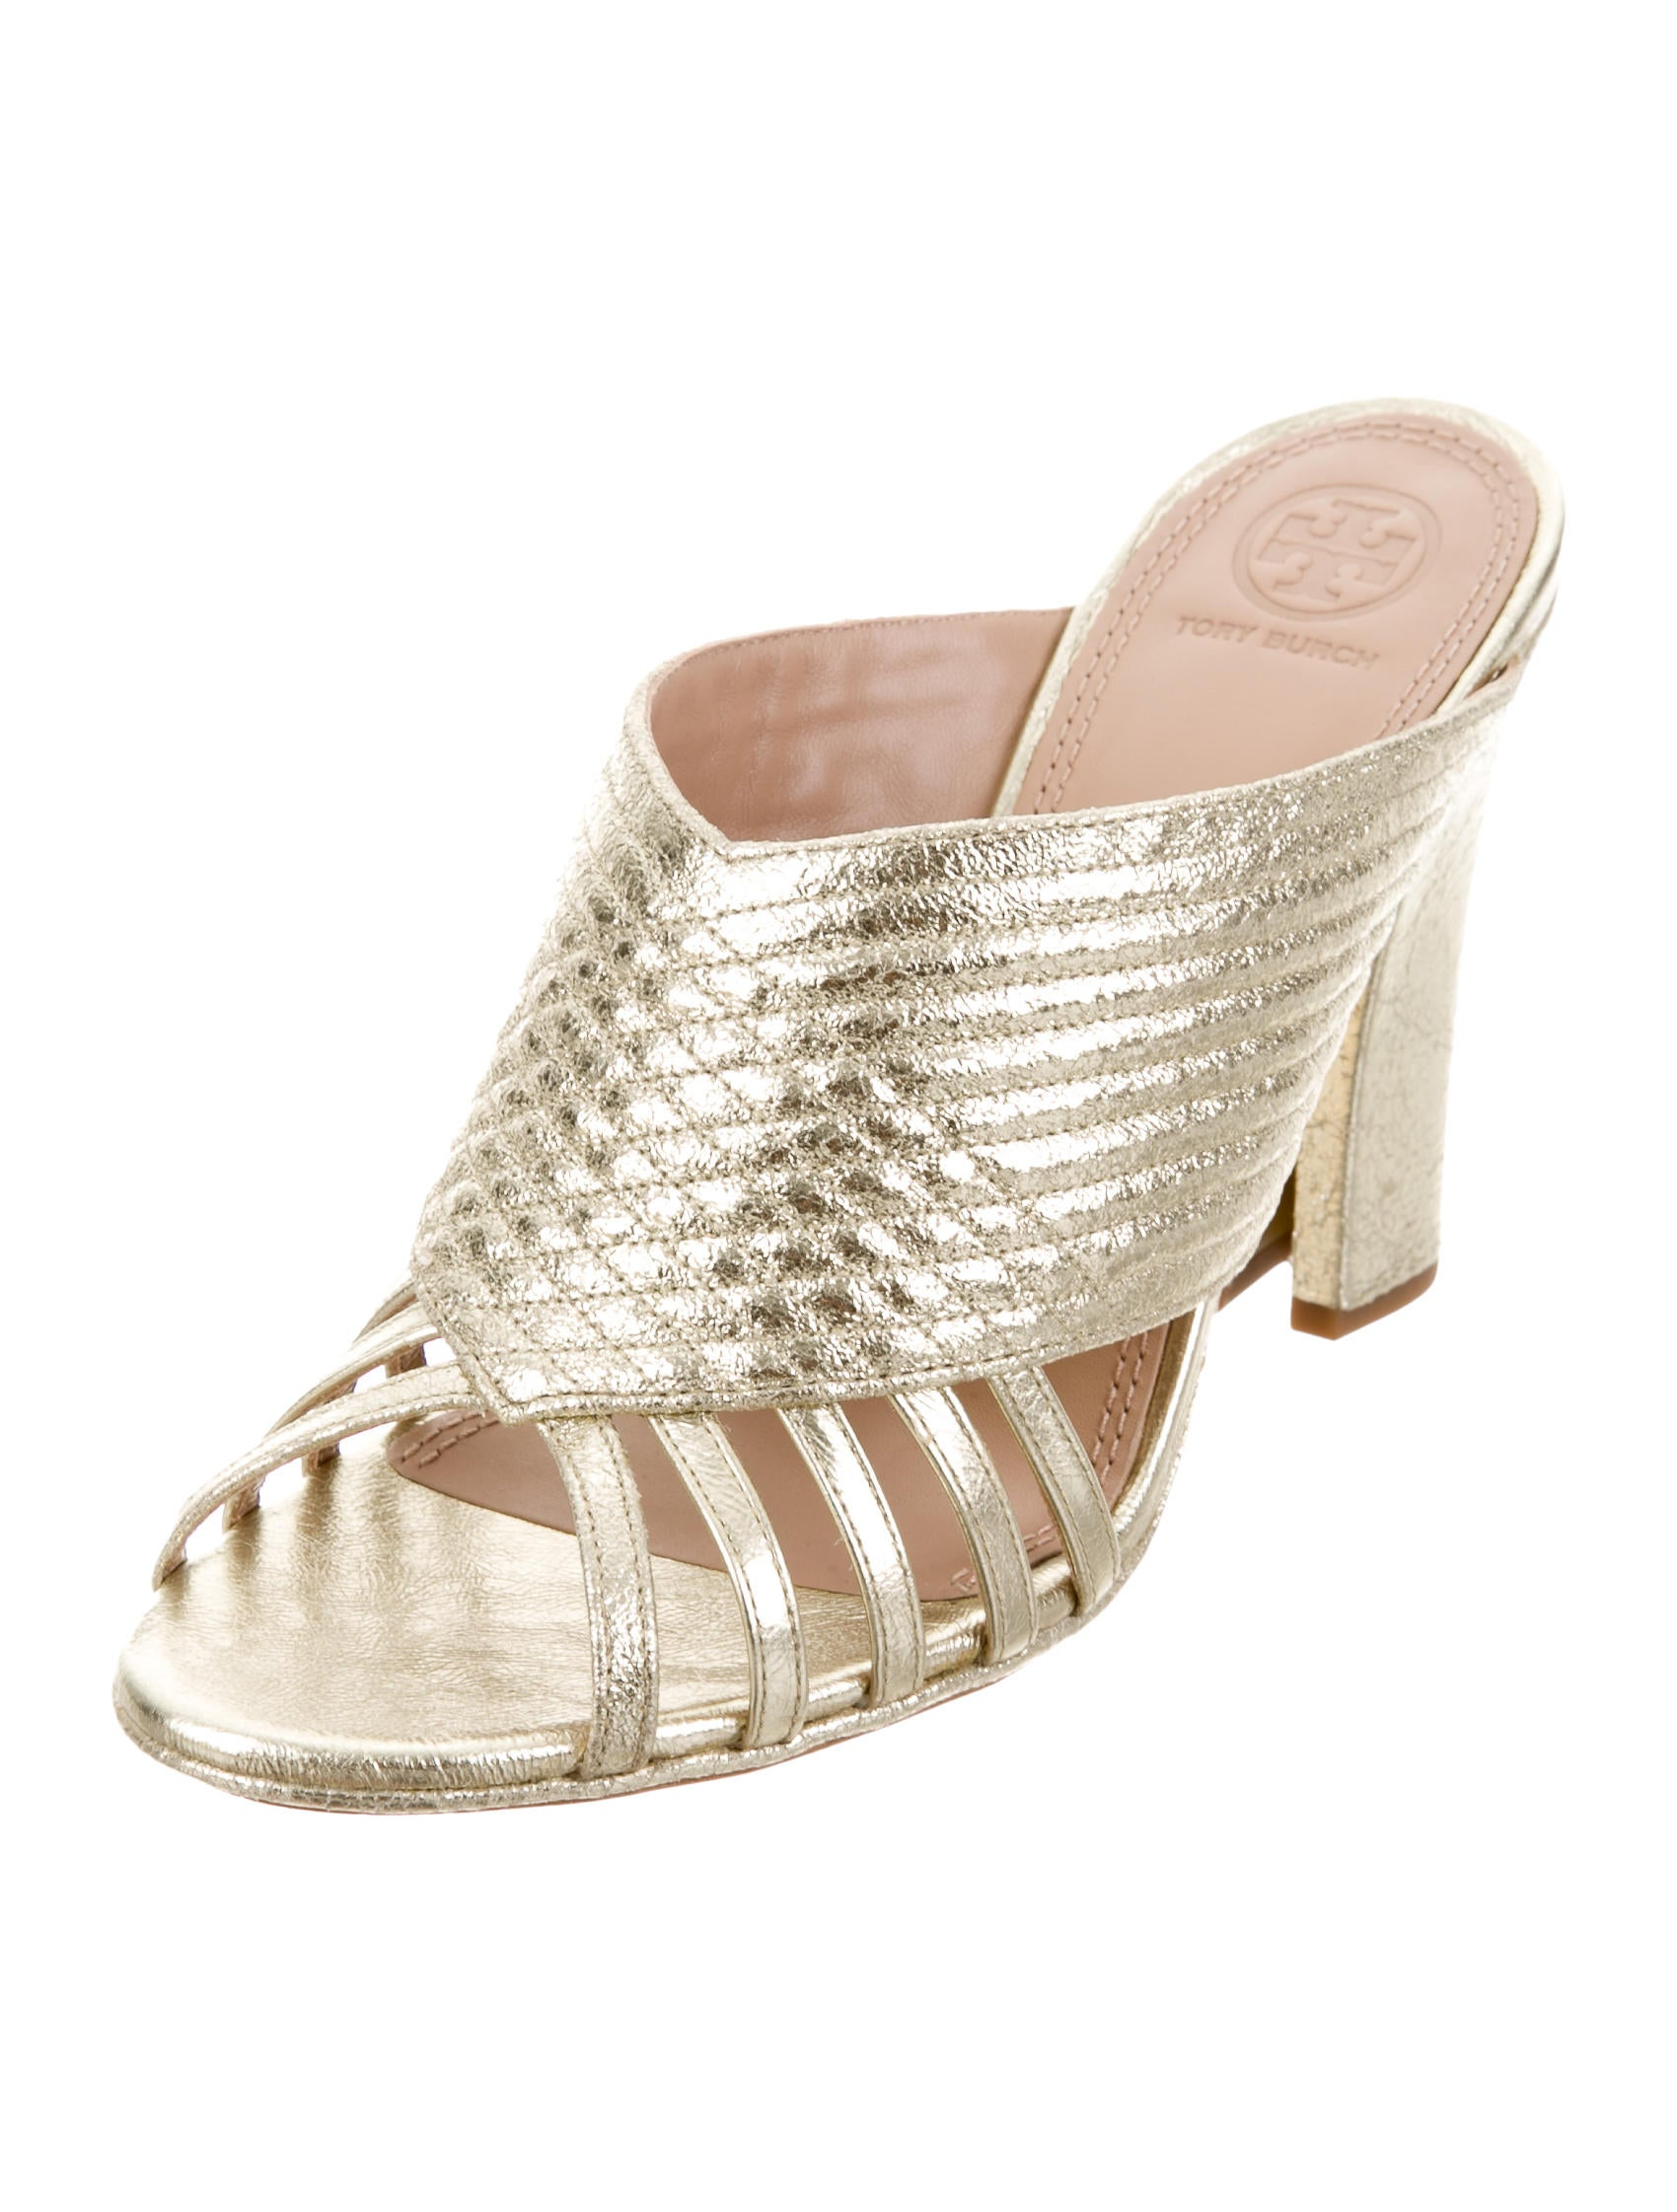 Tory Burch Brida Metallic Sandals w/ Tags visit new cheap sale low cost best for sale wmrAg